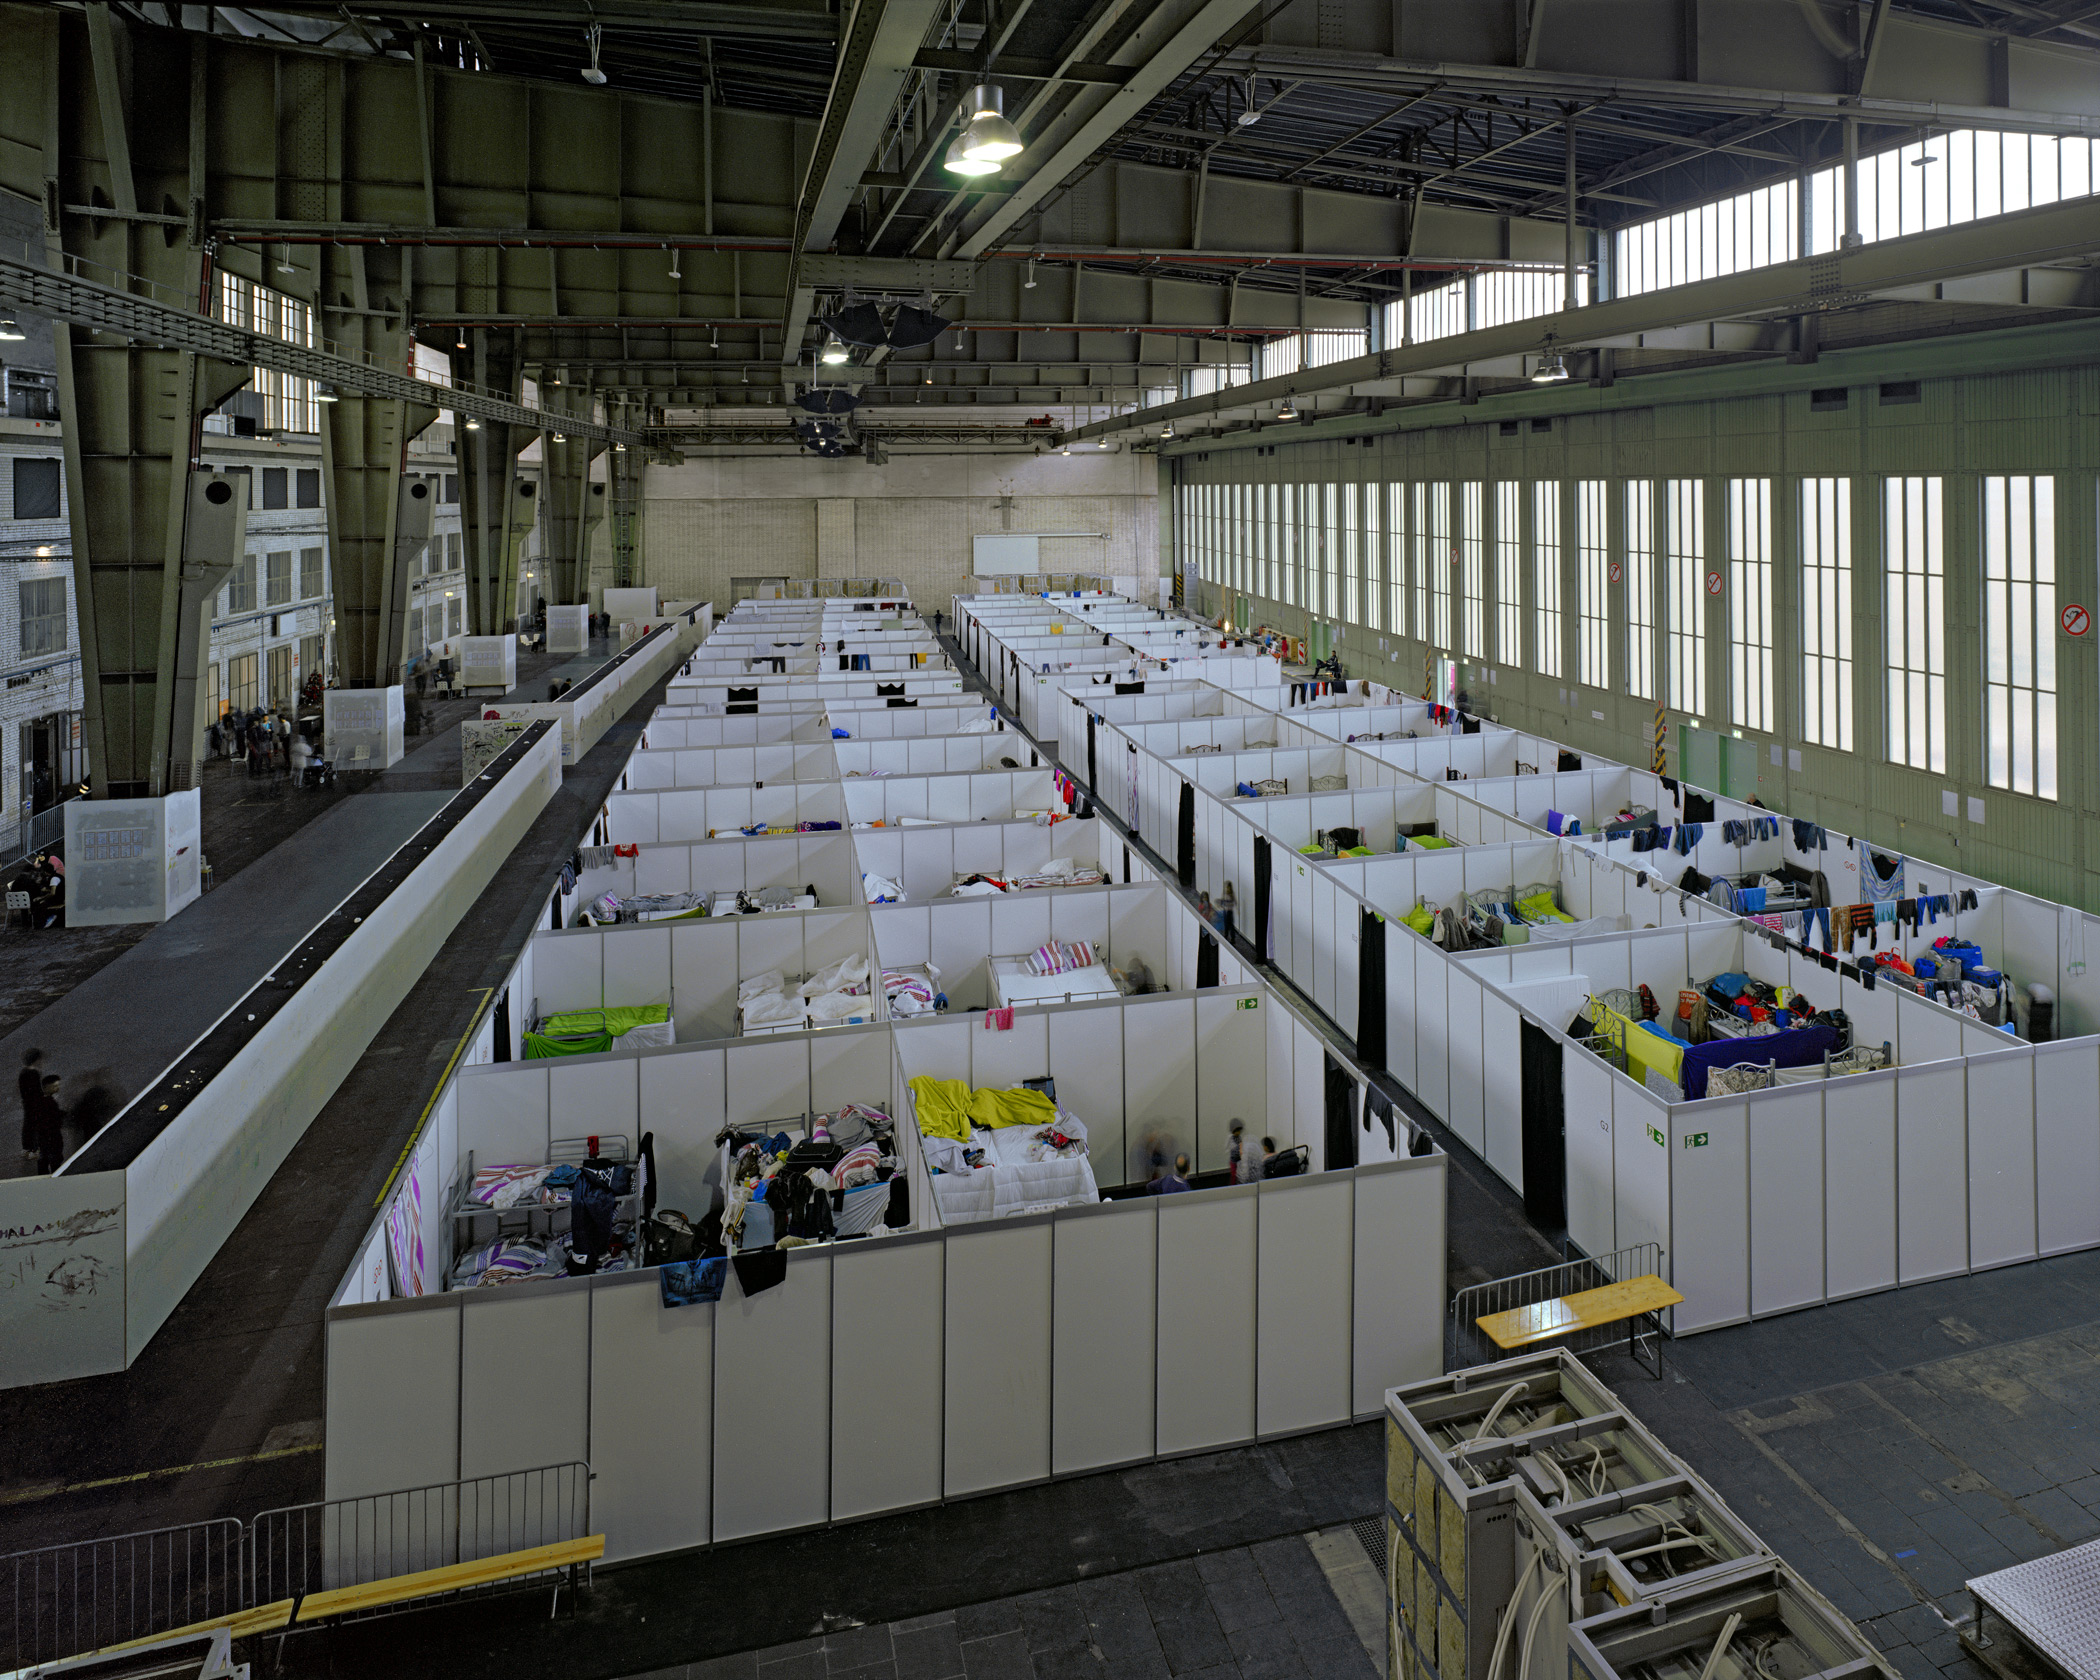 Used by the Nazis and once one of the world's largest buildings, today Berlin's Tempelhof airport is being used as a major shelter for asylum seekers.From  Person of the Year.  December 21, 2015 issue.